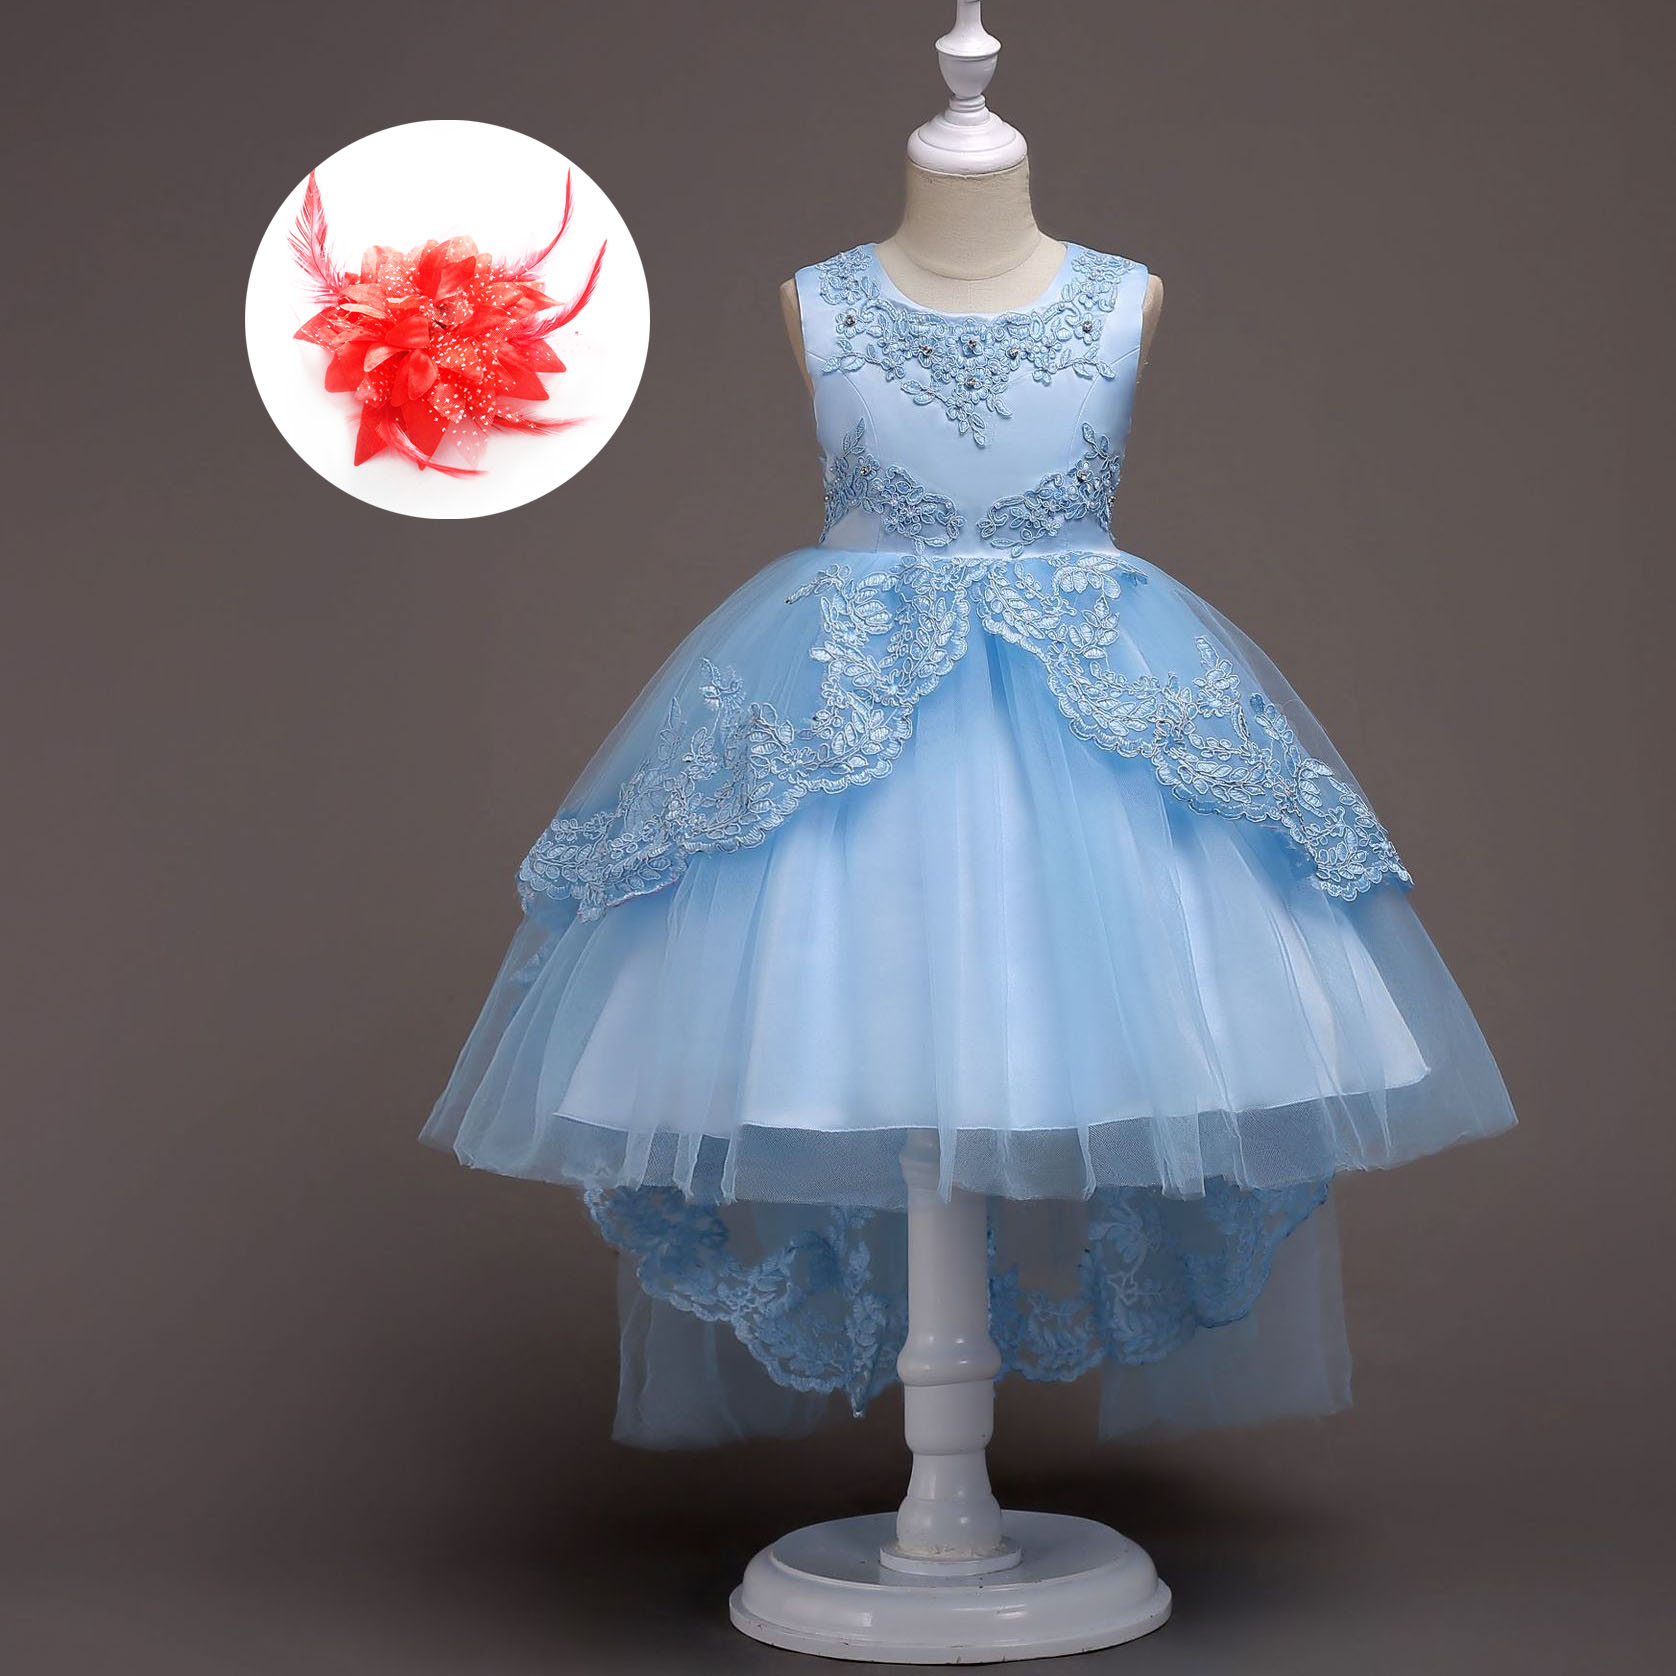 Teenage Girls Clothing 12 Years Beaded Lace Princess Evening Gowns for Wedding Birthday Dresses for Girls 3 Years To Size 16